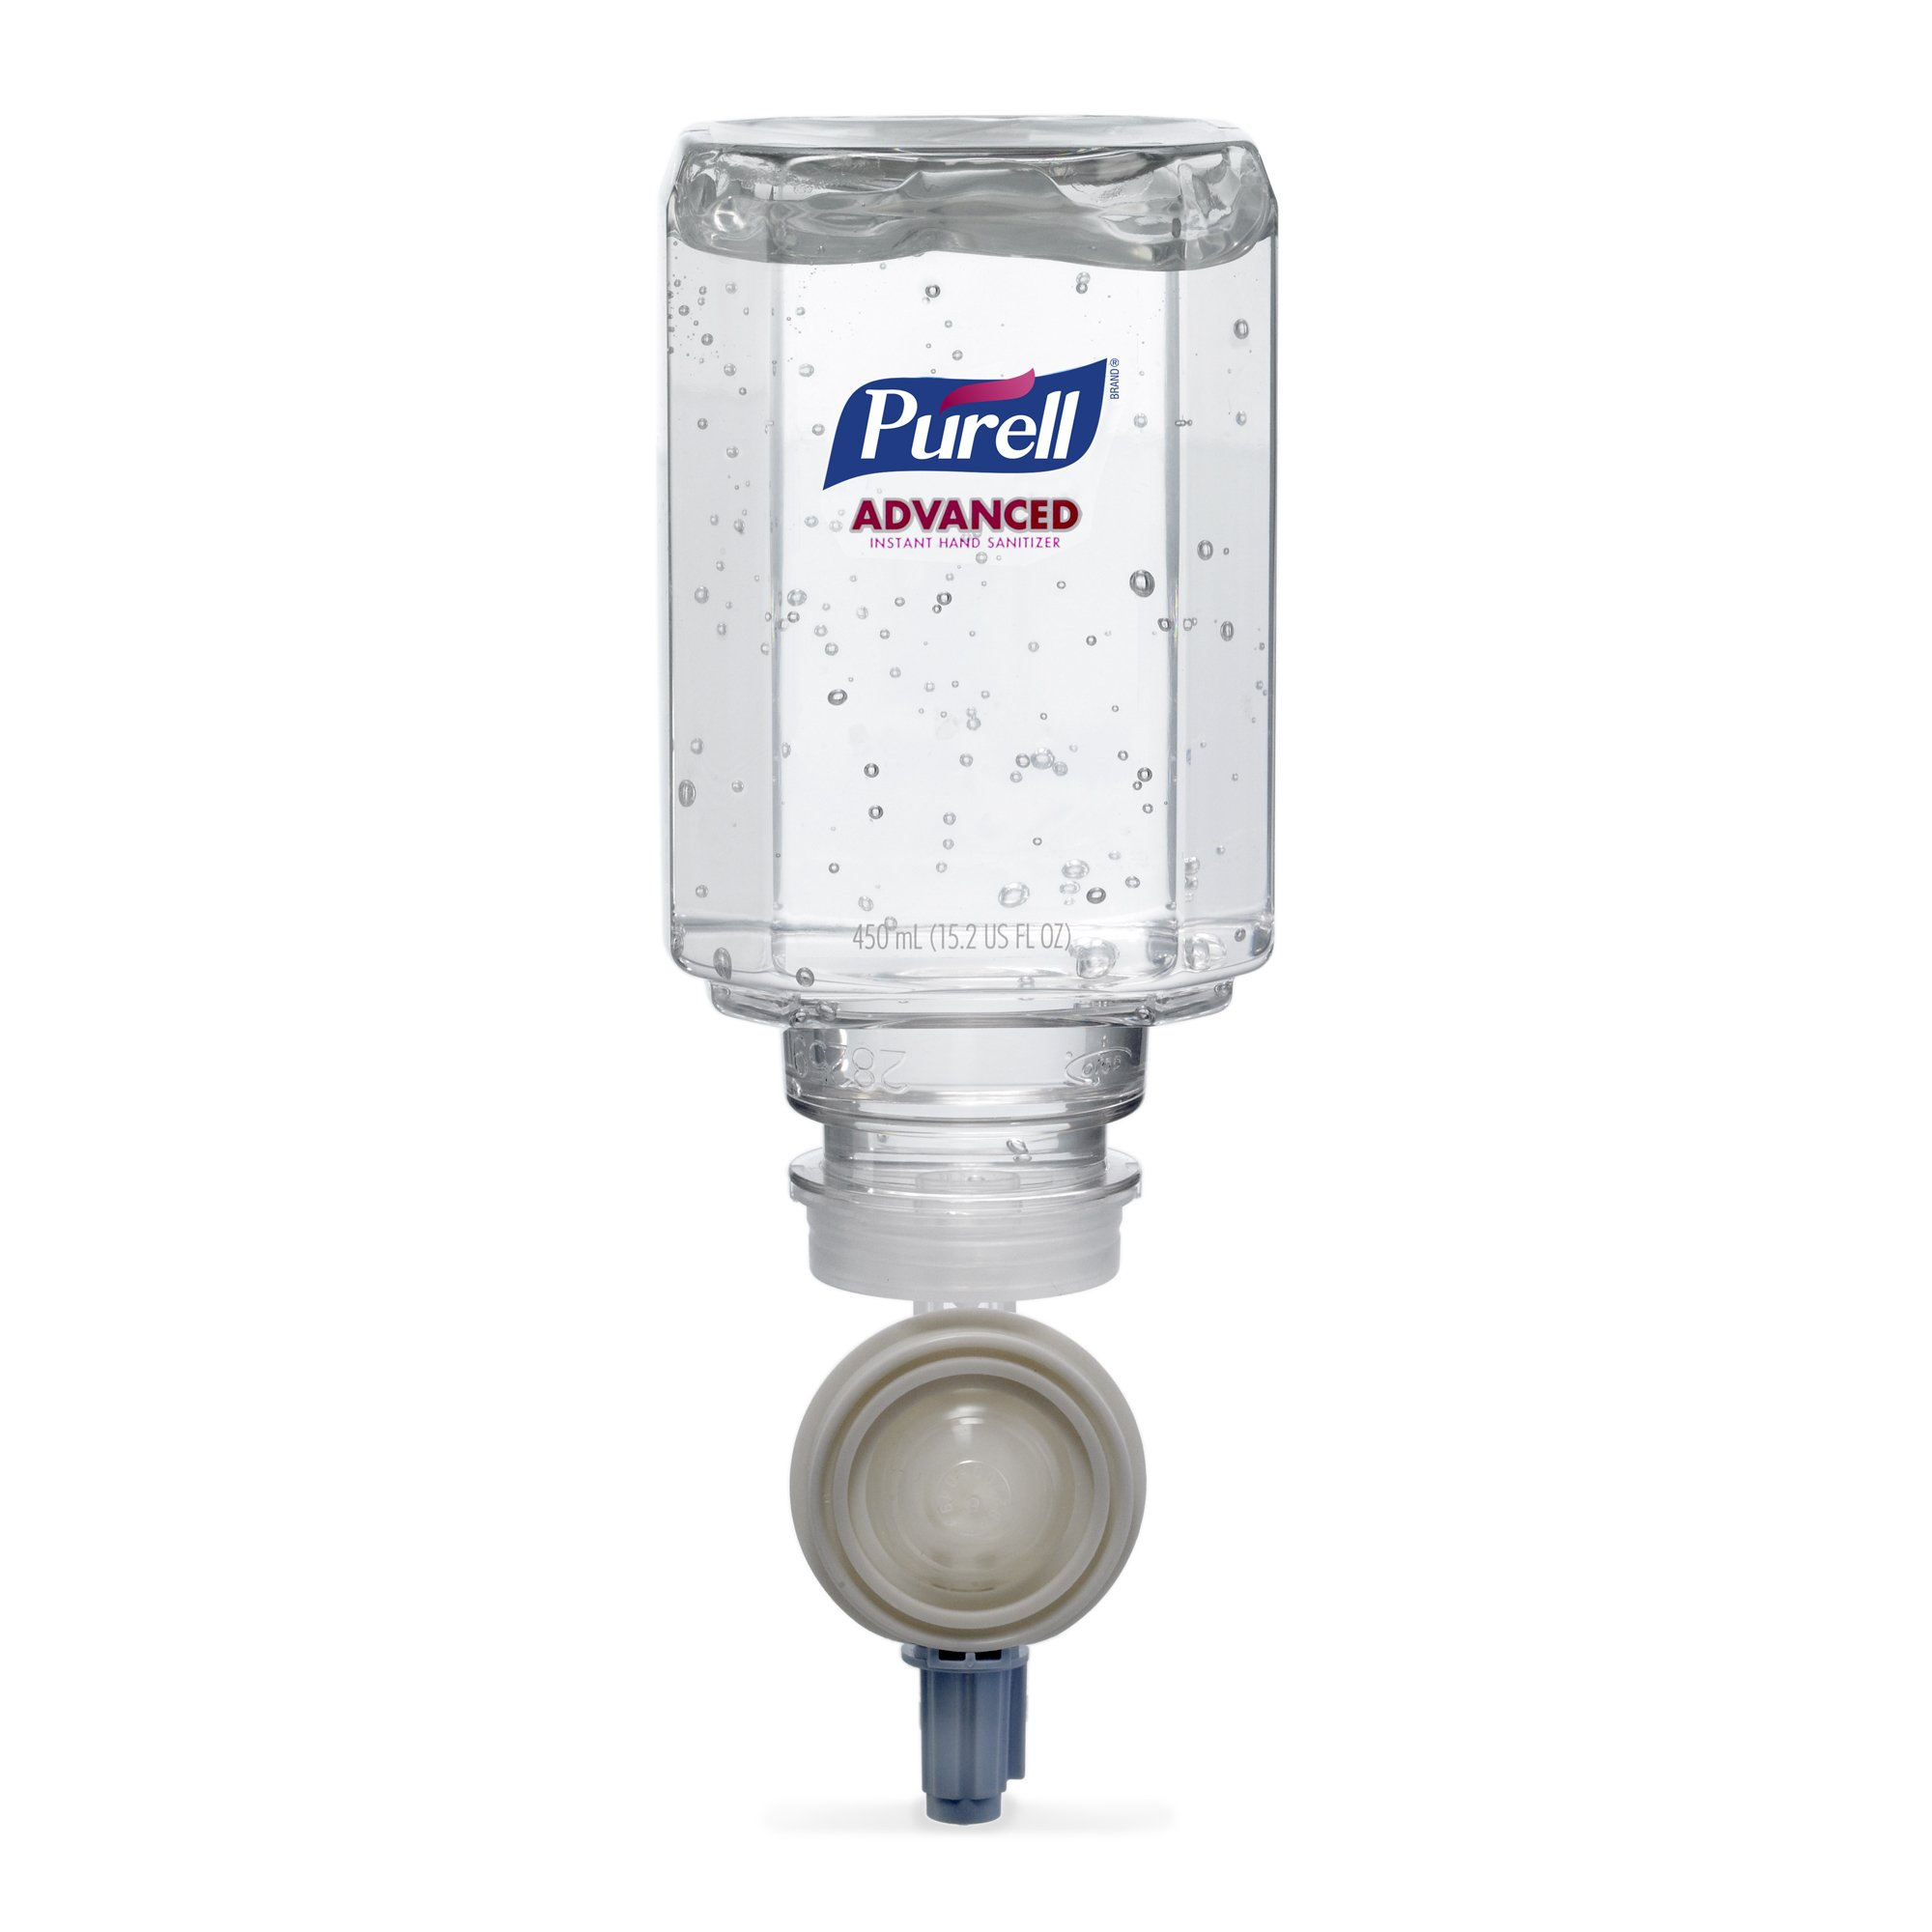 Purell 1450-02 Everywhere System Advanced Hand Sanitizer Gel Refill, 2-450 mL (Pack of 2)